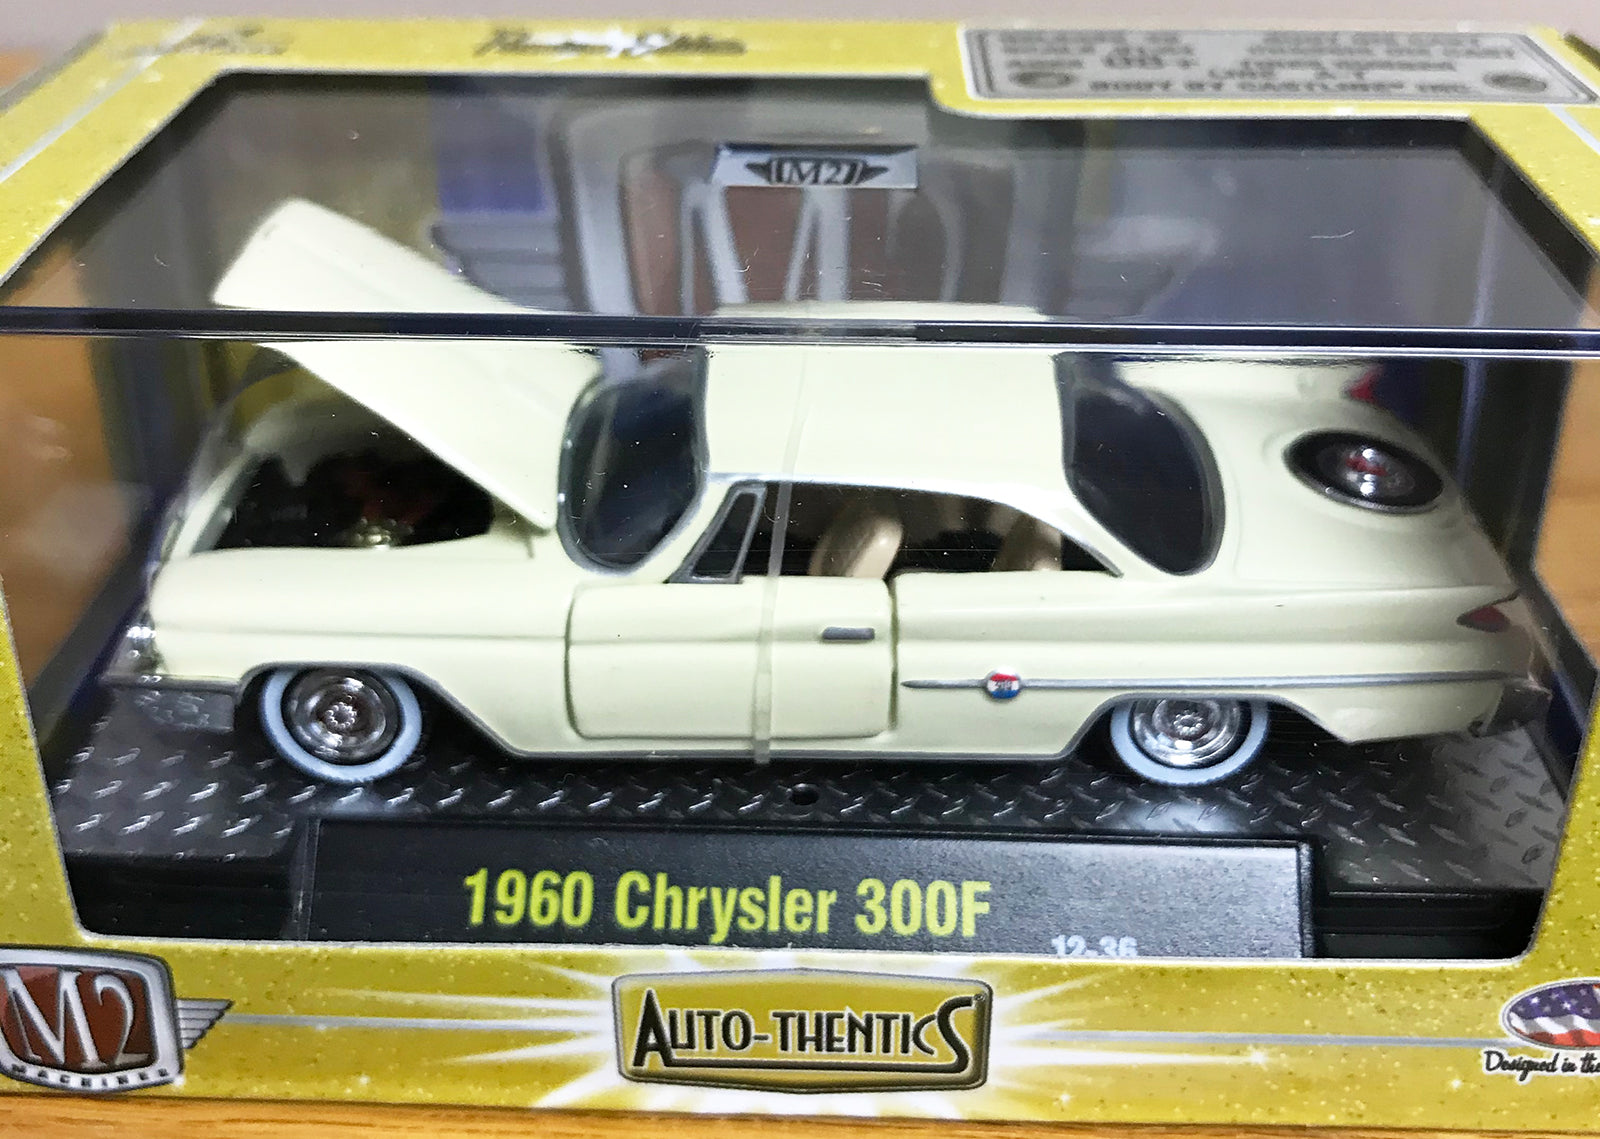 S 1960 Chrysler 300F - Beige